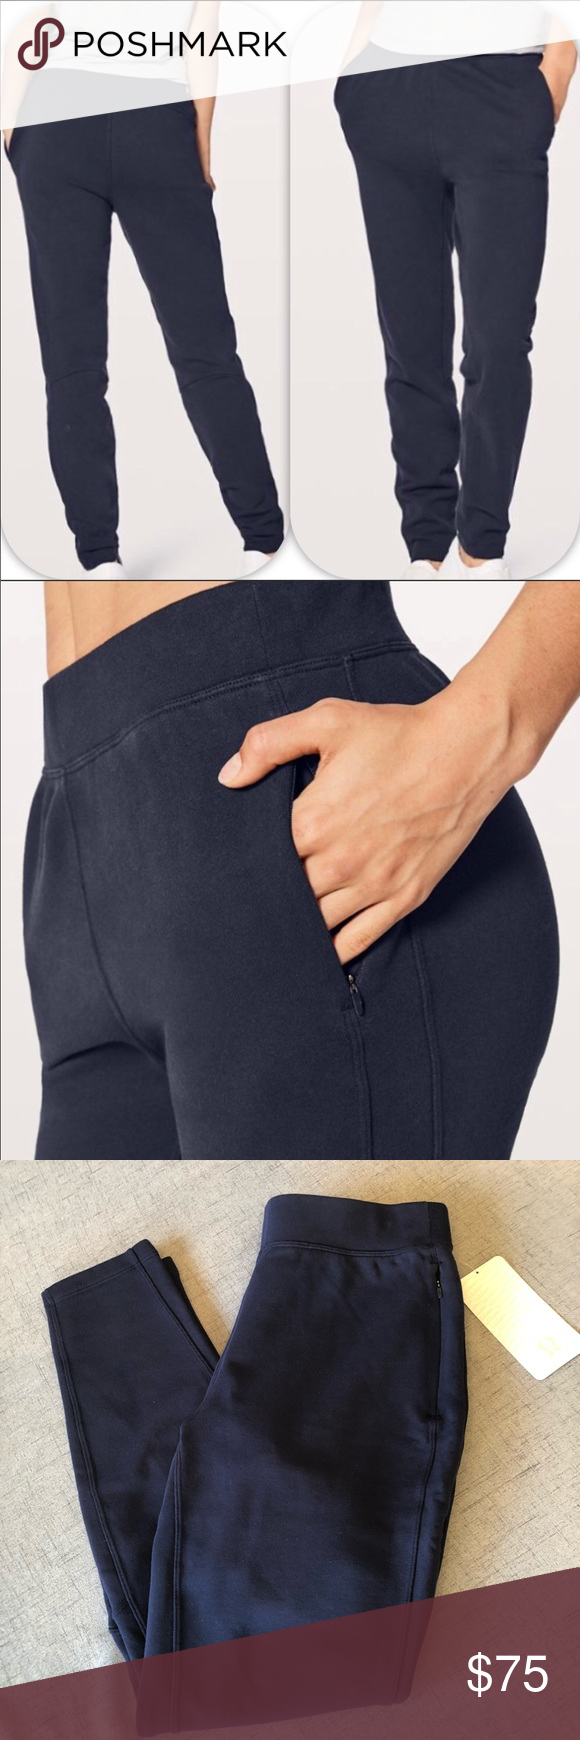 bf0c1d109 Lululemon Jogger Sweatpants Free to Roam New Lululemon Free to Roam Joggers  new with tags size 8. Midnight blue. Has 2 zippered Pockets. No flaws.